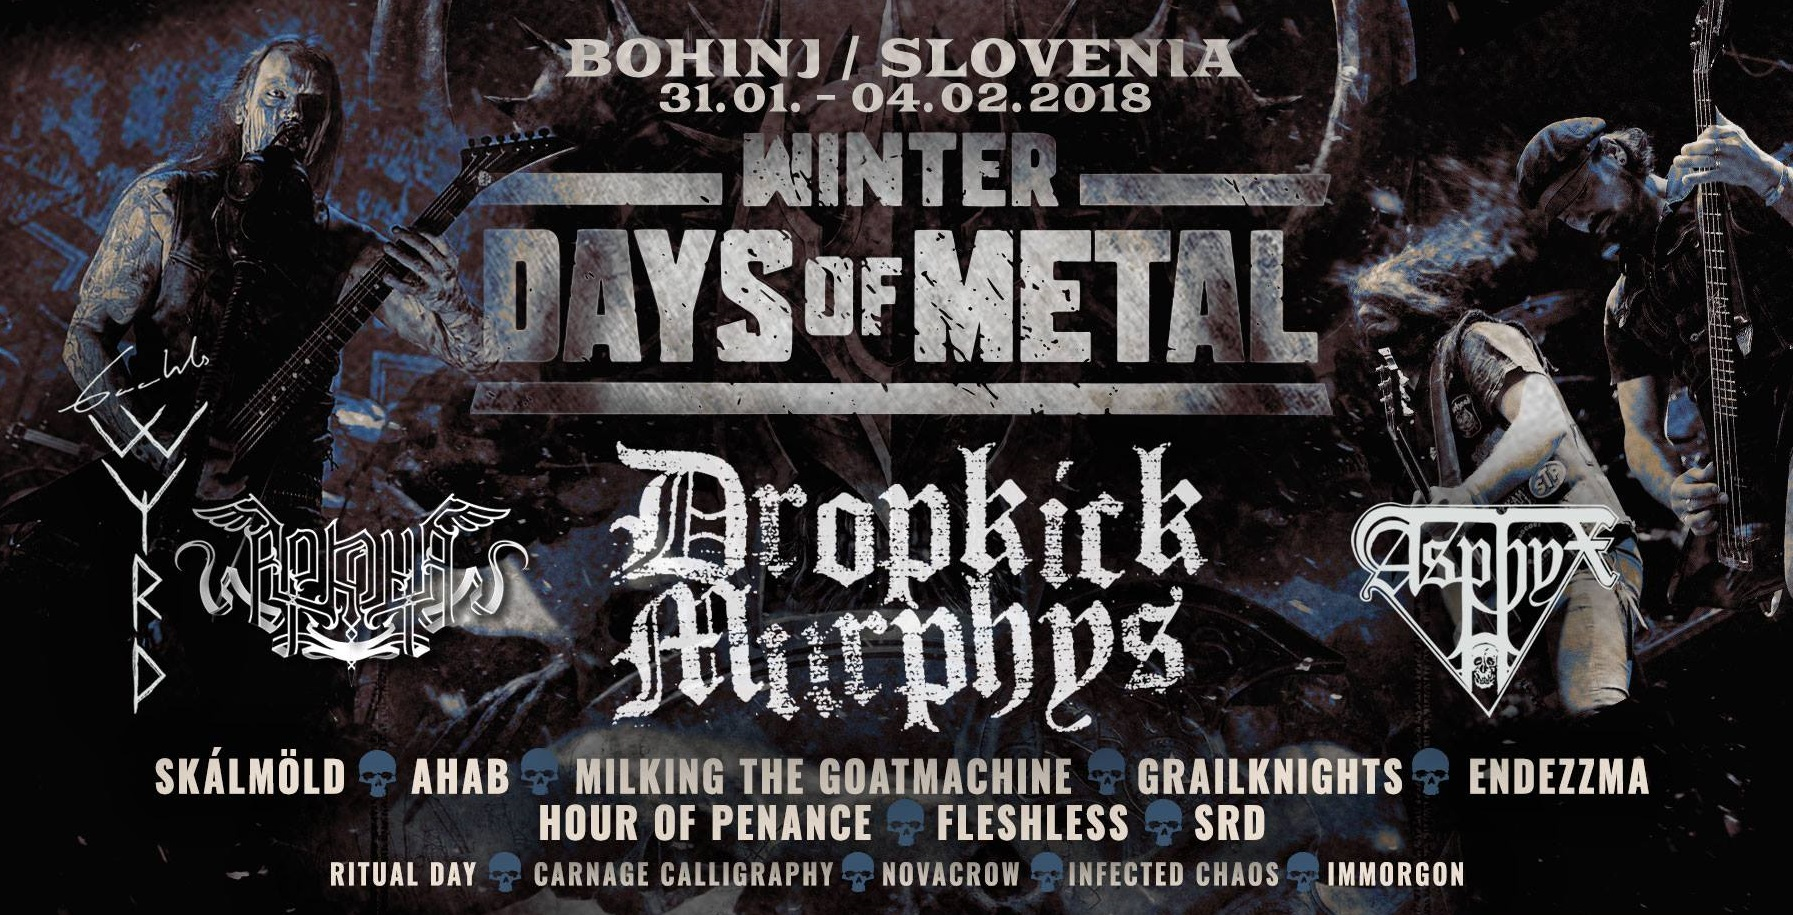 Winter Days Of Metal 2018, European Tour, Winter Days Of Metal festival 2018 Bohinj Slovenia, AHAB, ARKONA, ENDEZZMA, ASPHYX, FLESHLESS, CARNAGE CALLIGRAPHY, DALRIADA, DROPKICK MURPHYS, GAAHLS WYRD, HOUR OF PENANCE, SKALMOLD, IMMORGON, RITUAL DAY, metal music festival